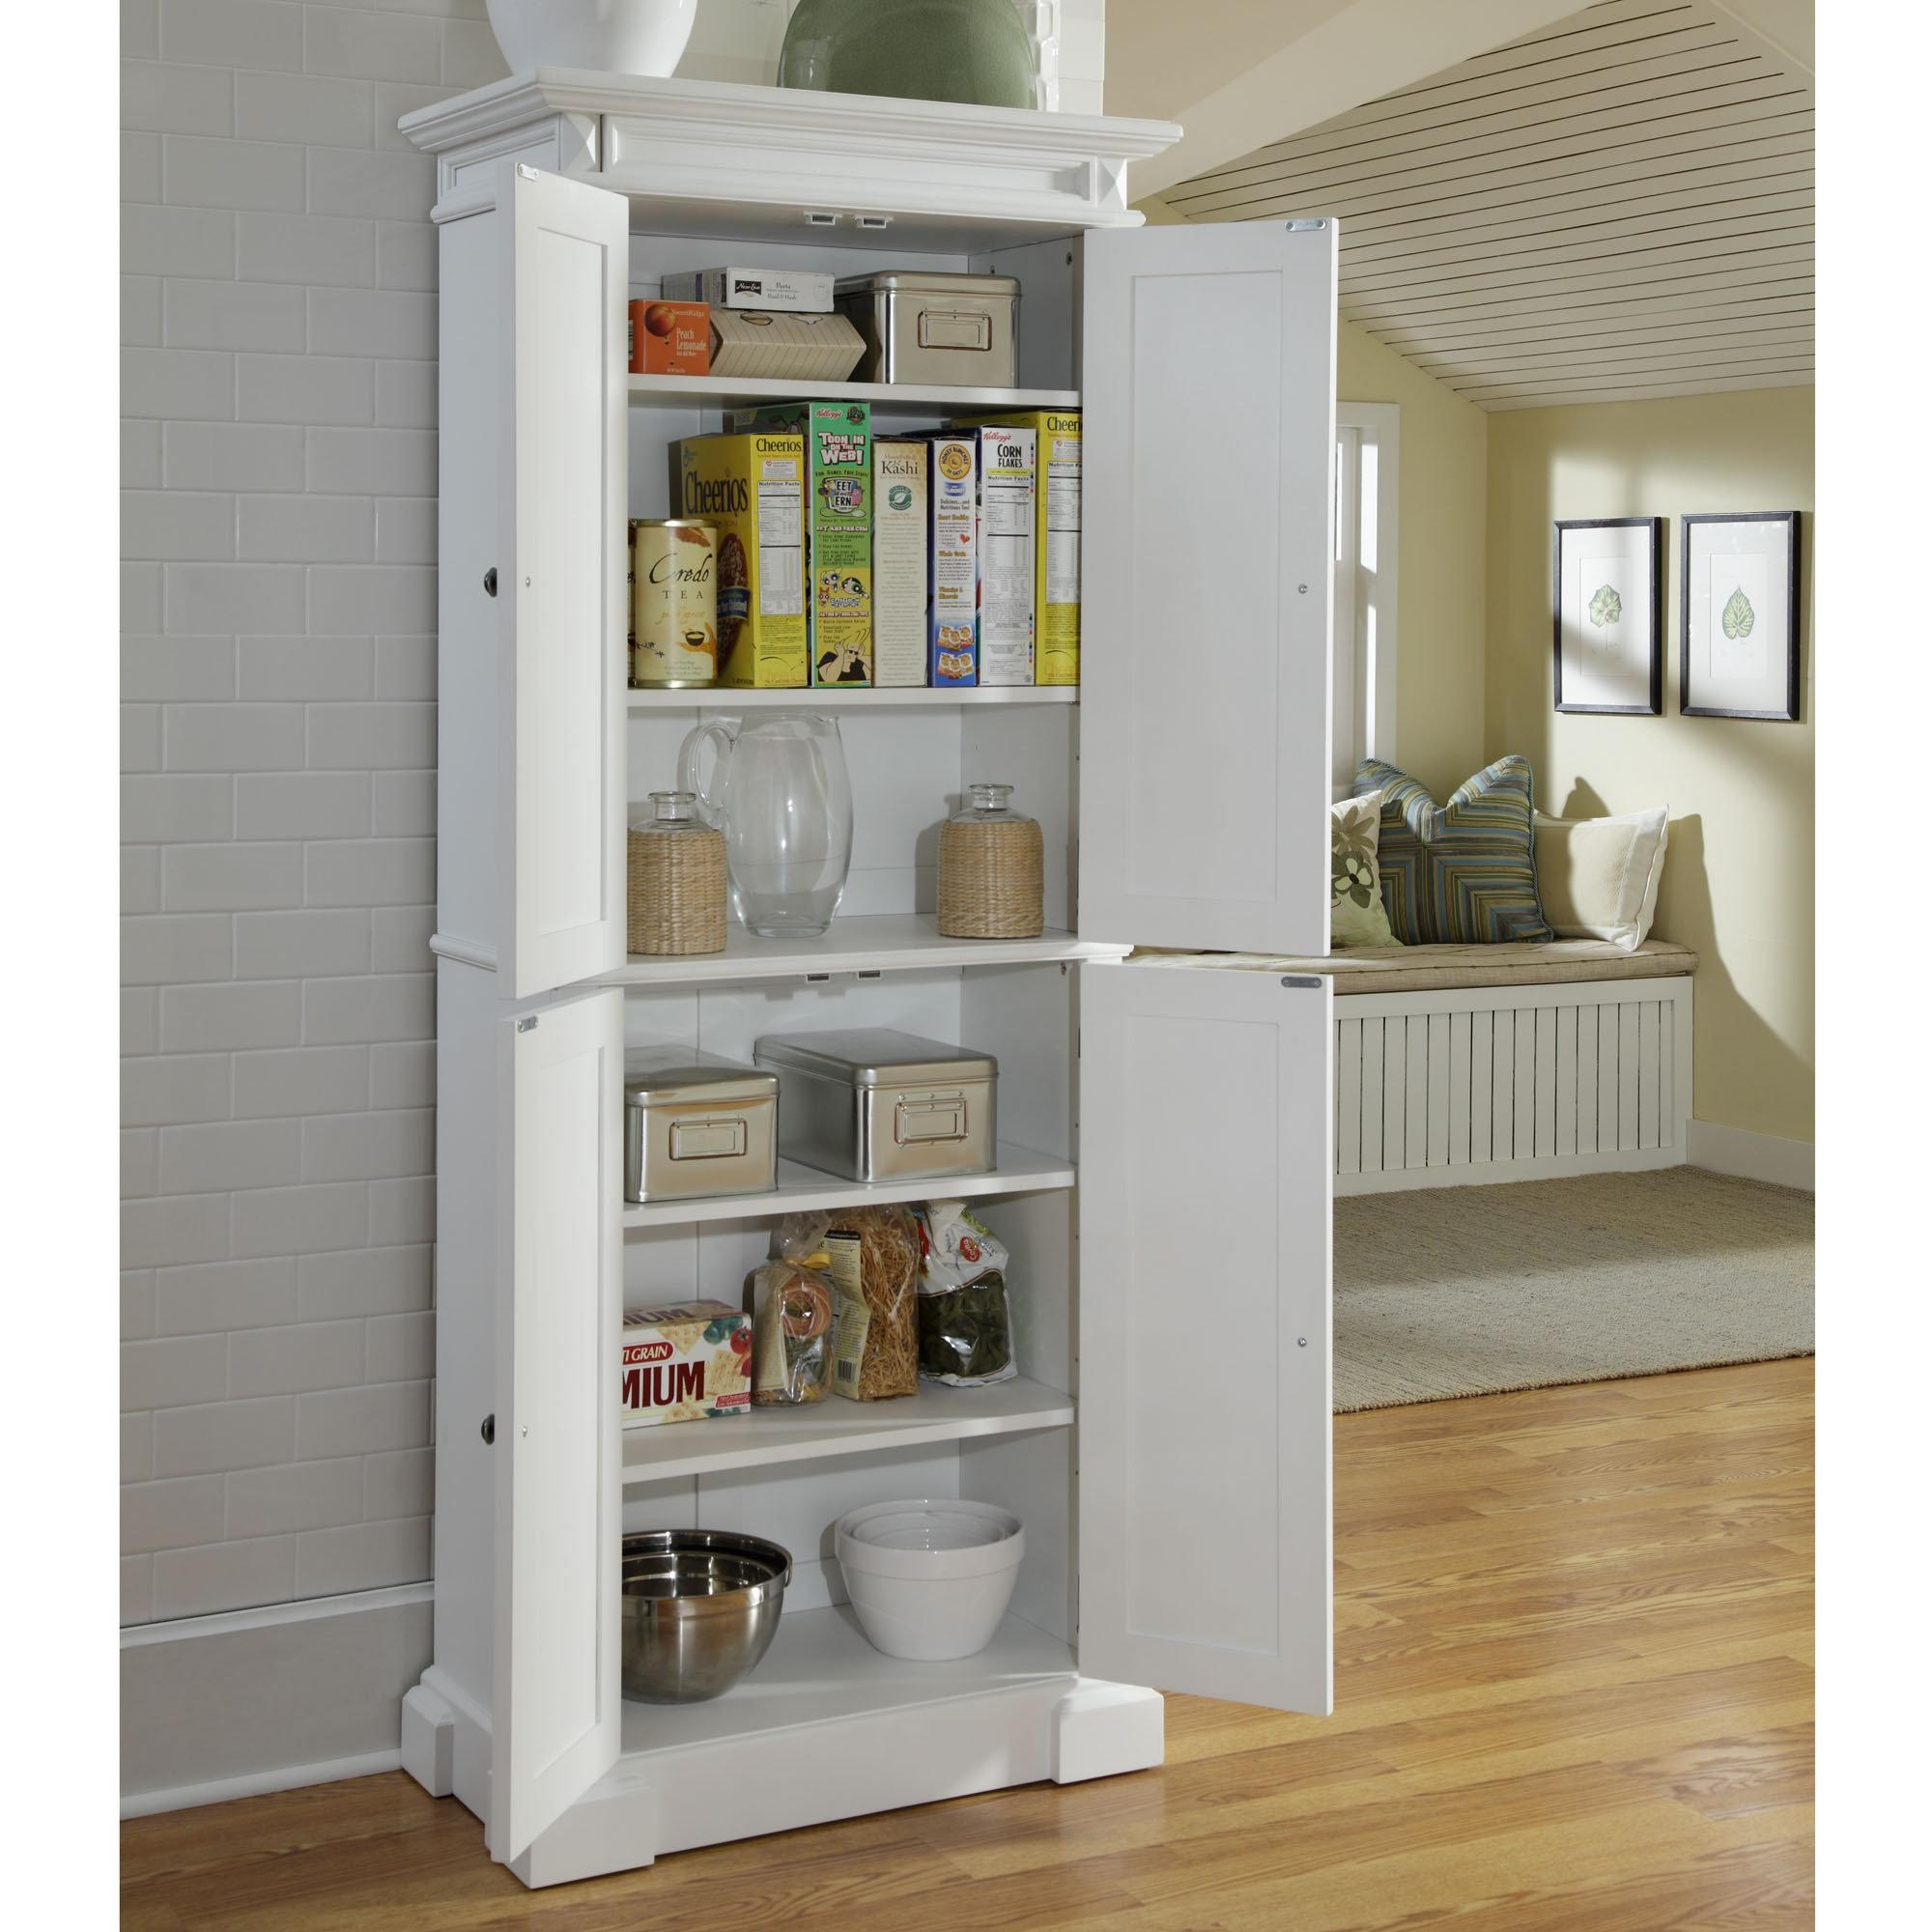 Pantry Storage Cabinets For Kitchen